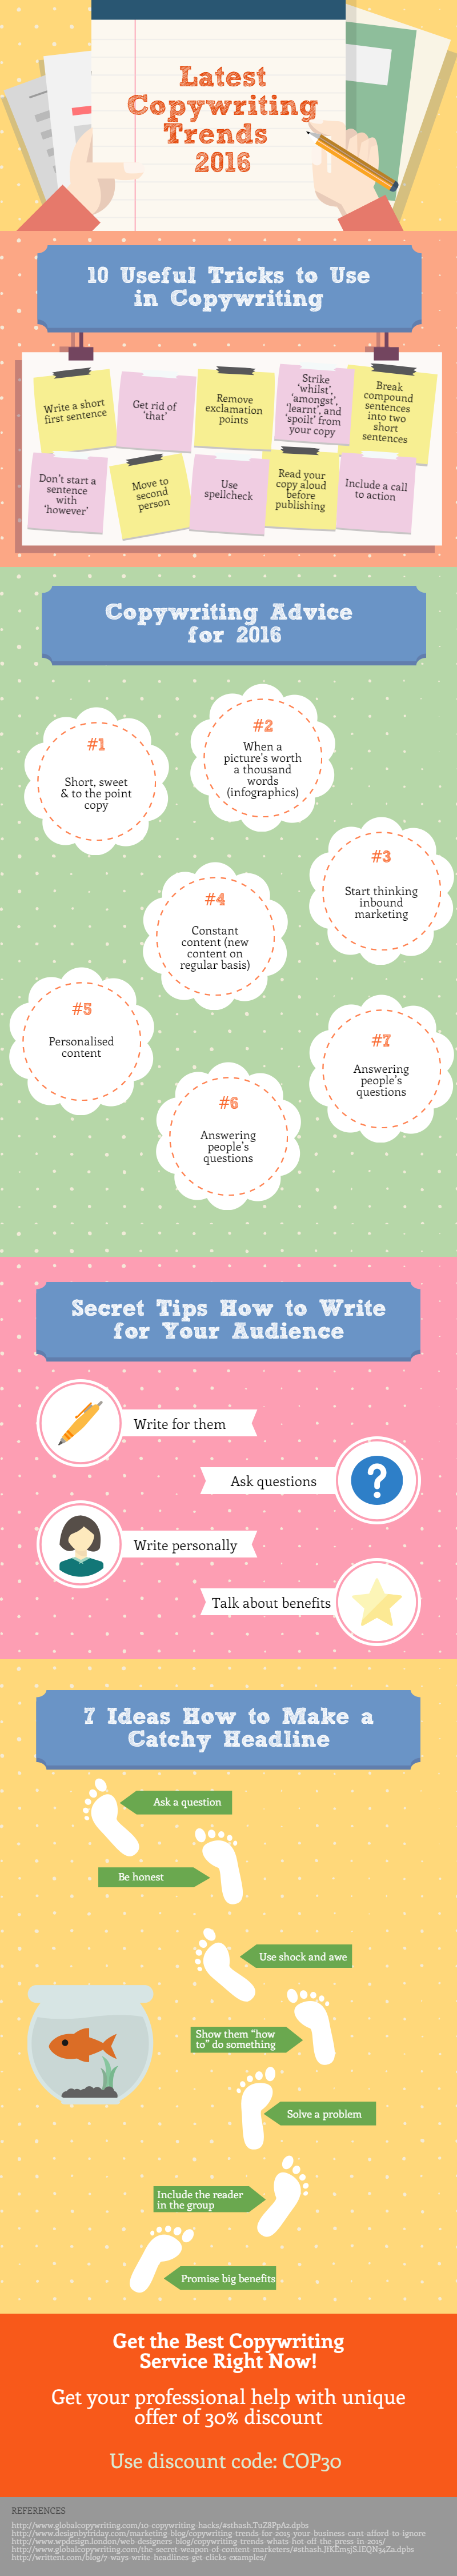 Latest Copywriting Trends 2016 #Infographic